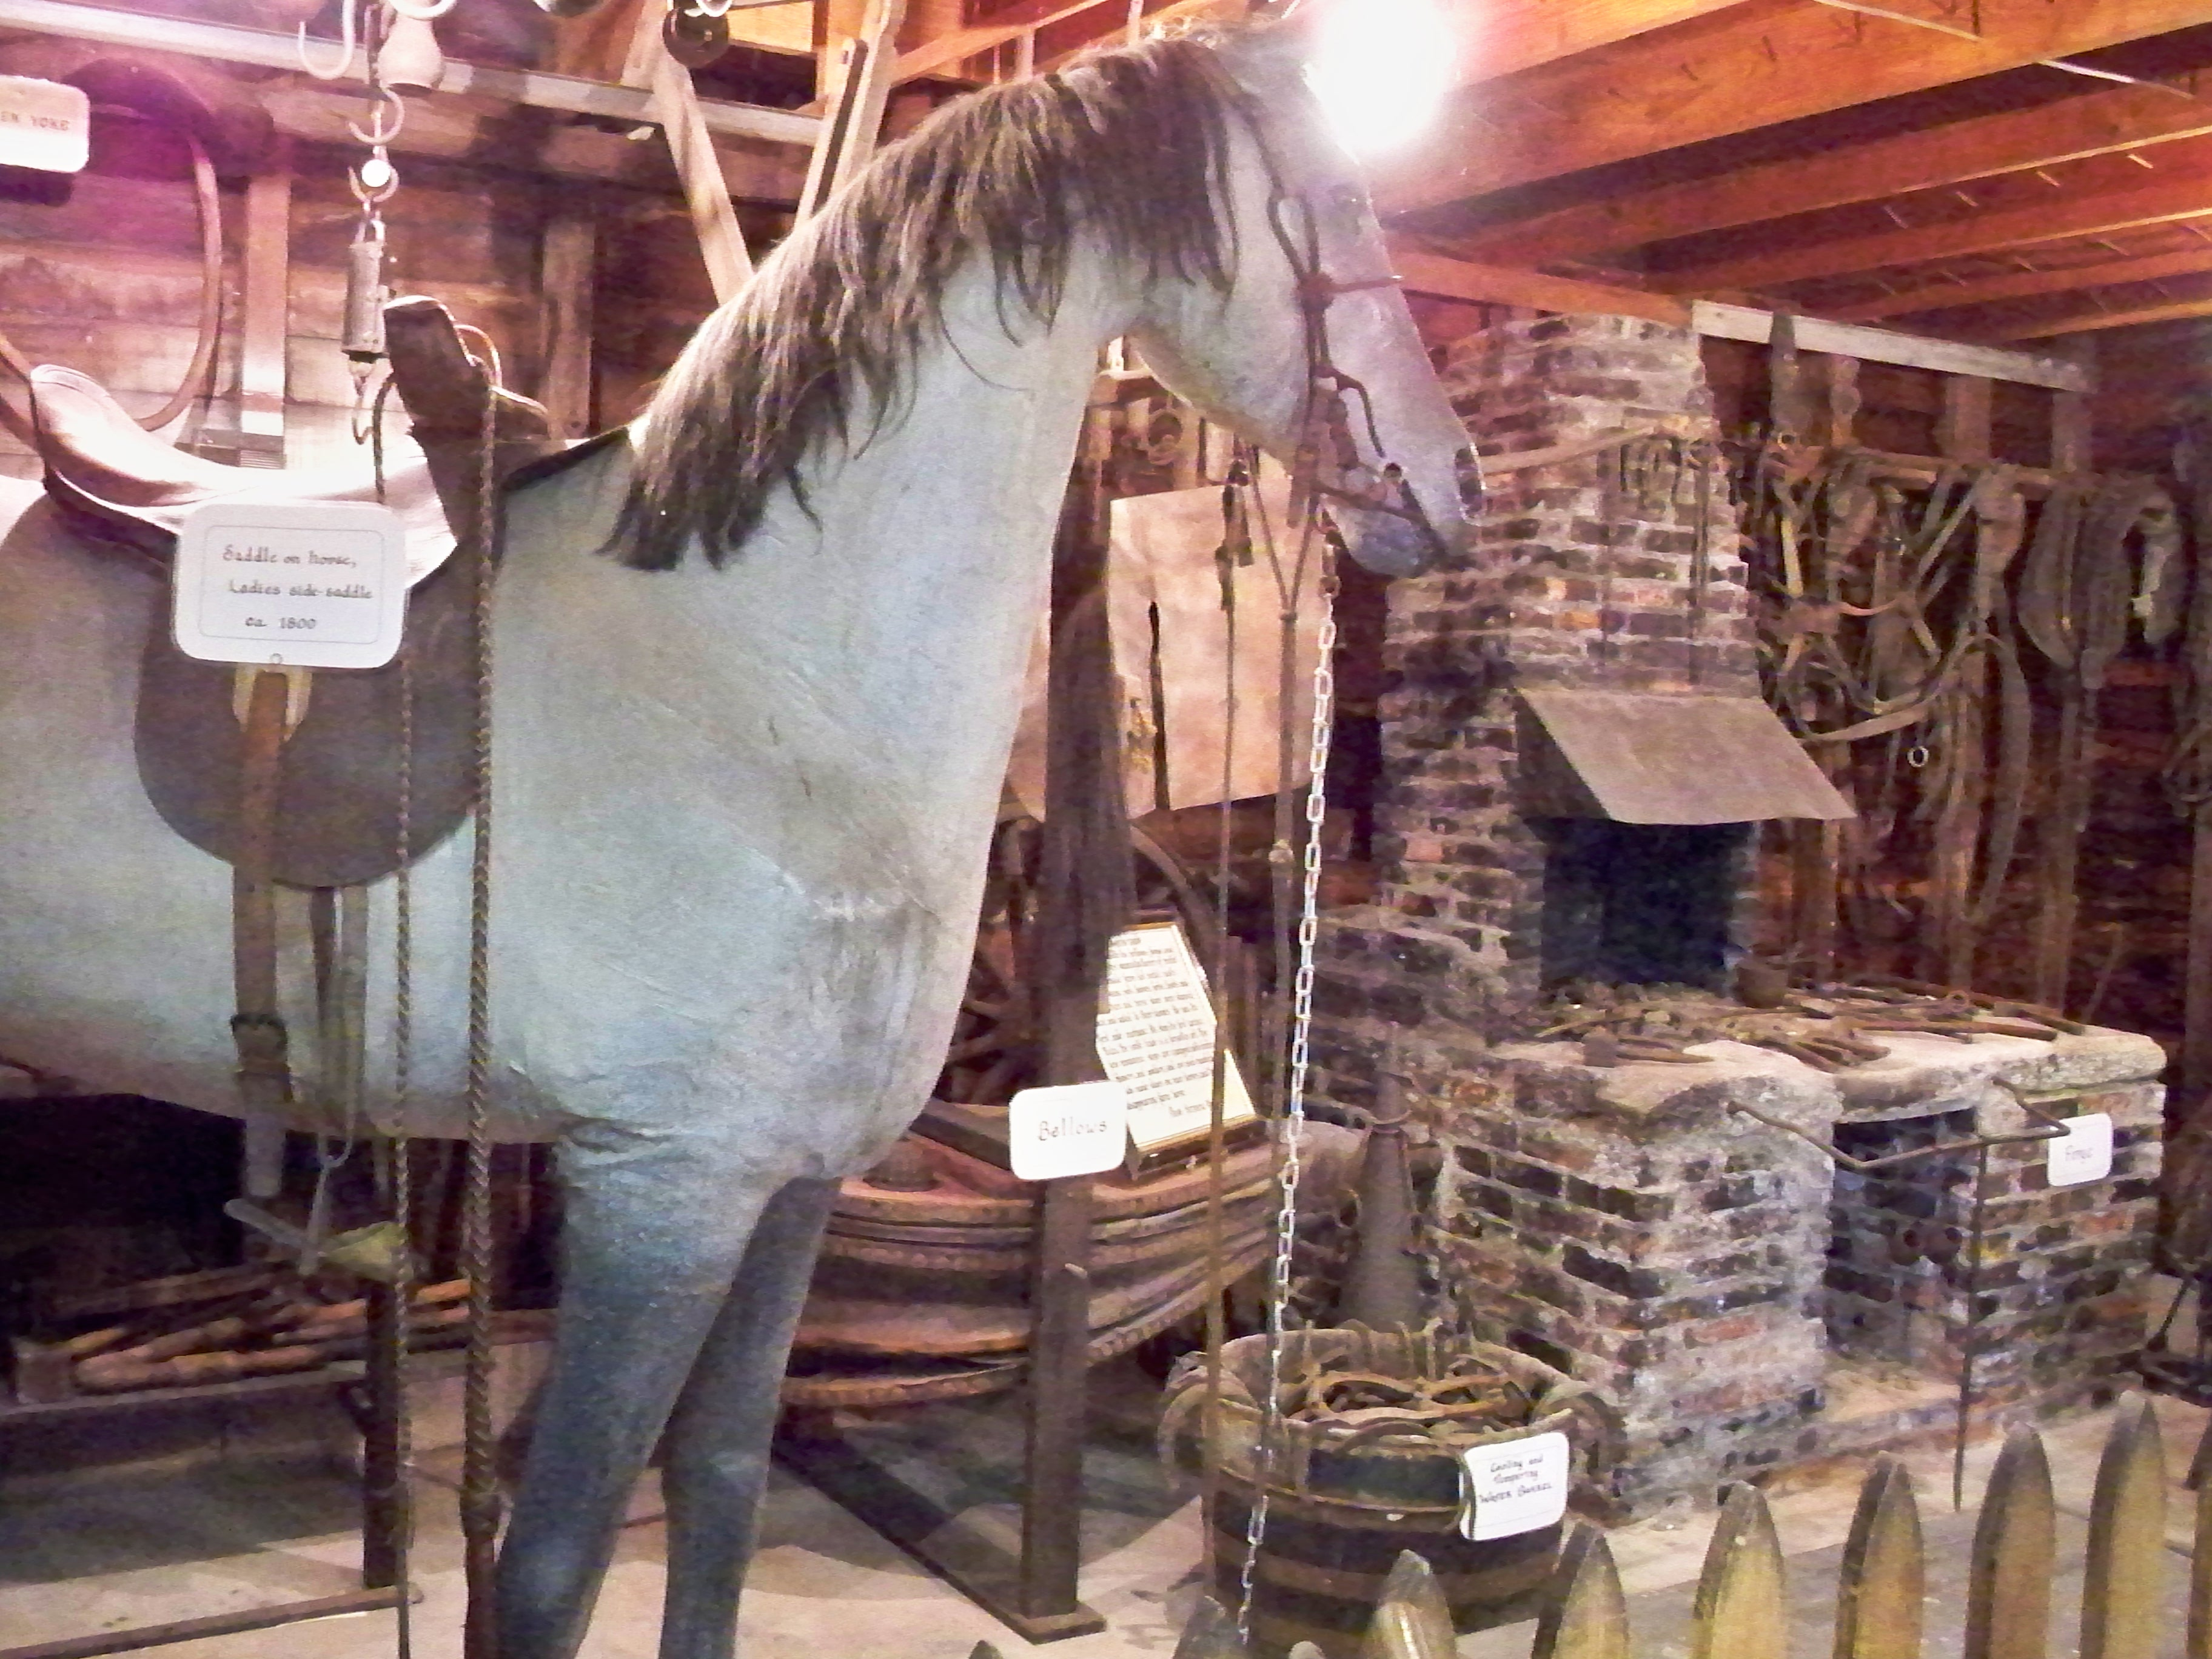 A blacksmith forge and bellows are in the background of a paper-mâché horse that would have sat in front of the shop to symbolize the blacksmith shop for any illiterate patrons.